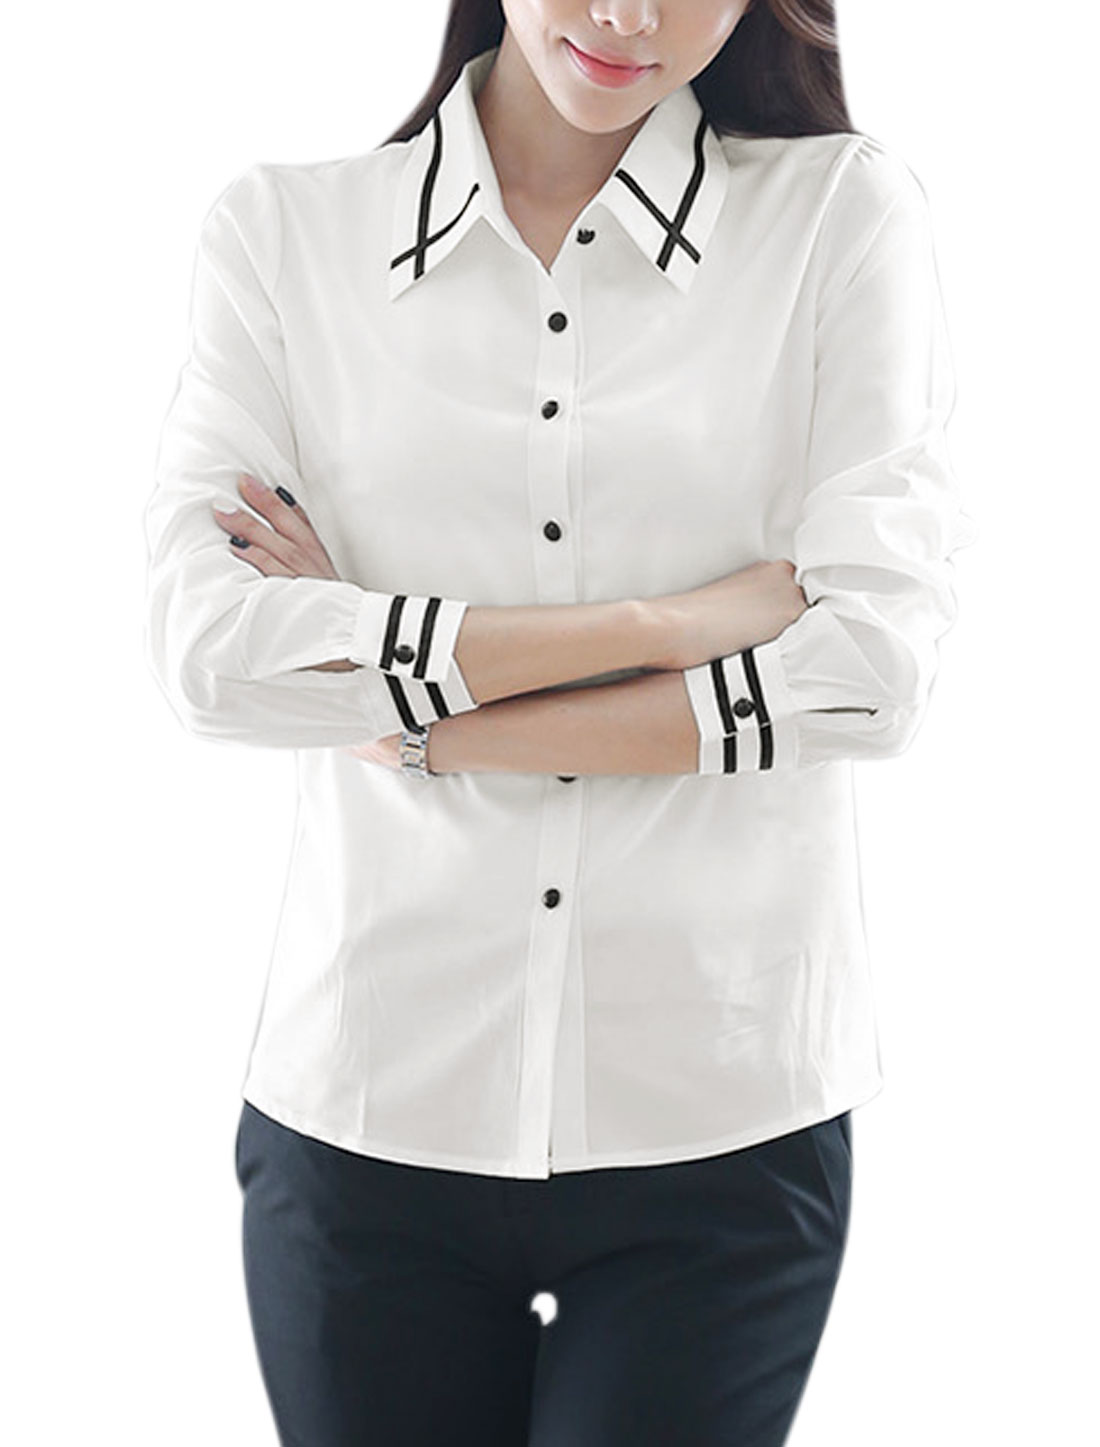 Women Point Collar Buttoned Stripes Stitched Casual Shirt White M